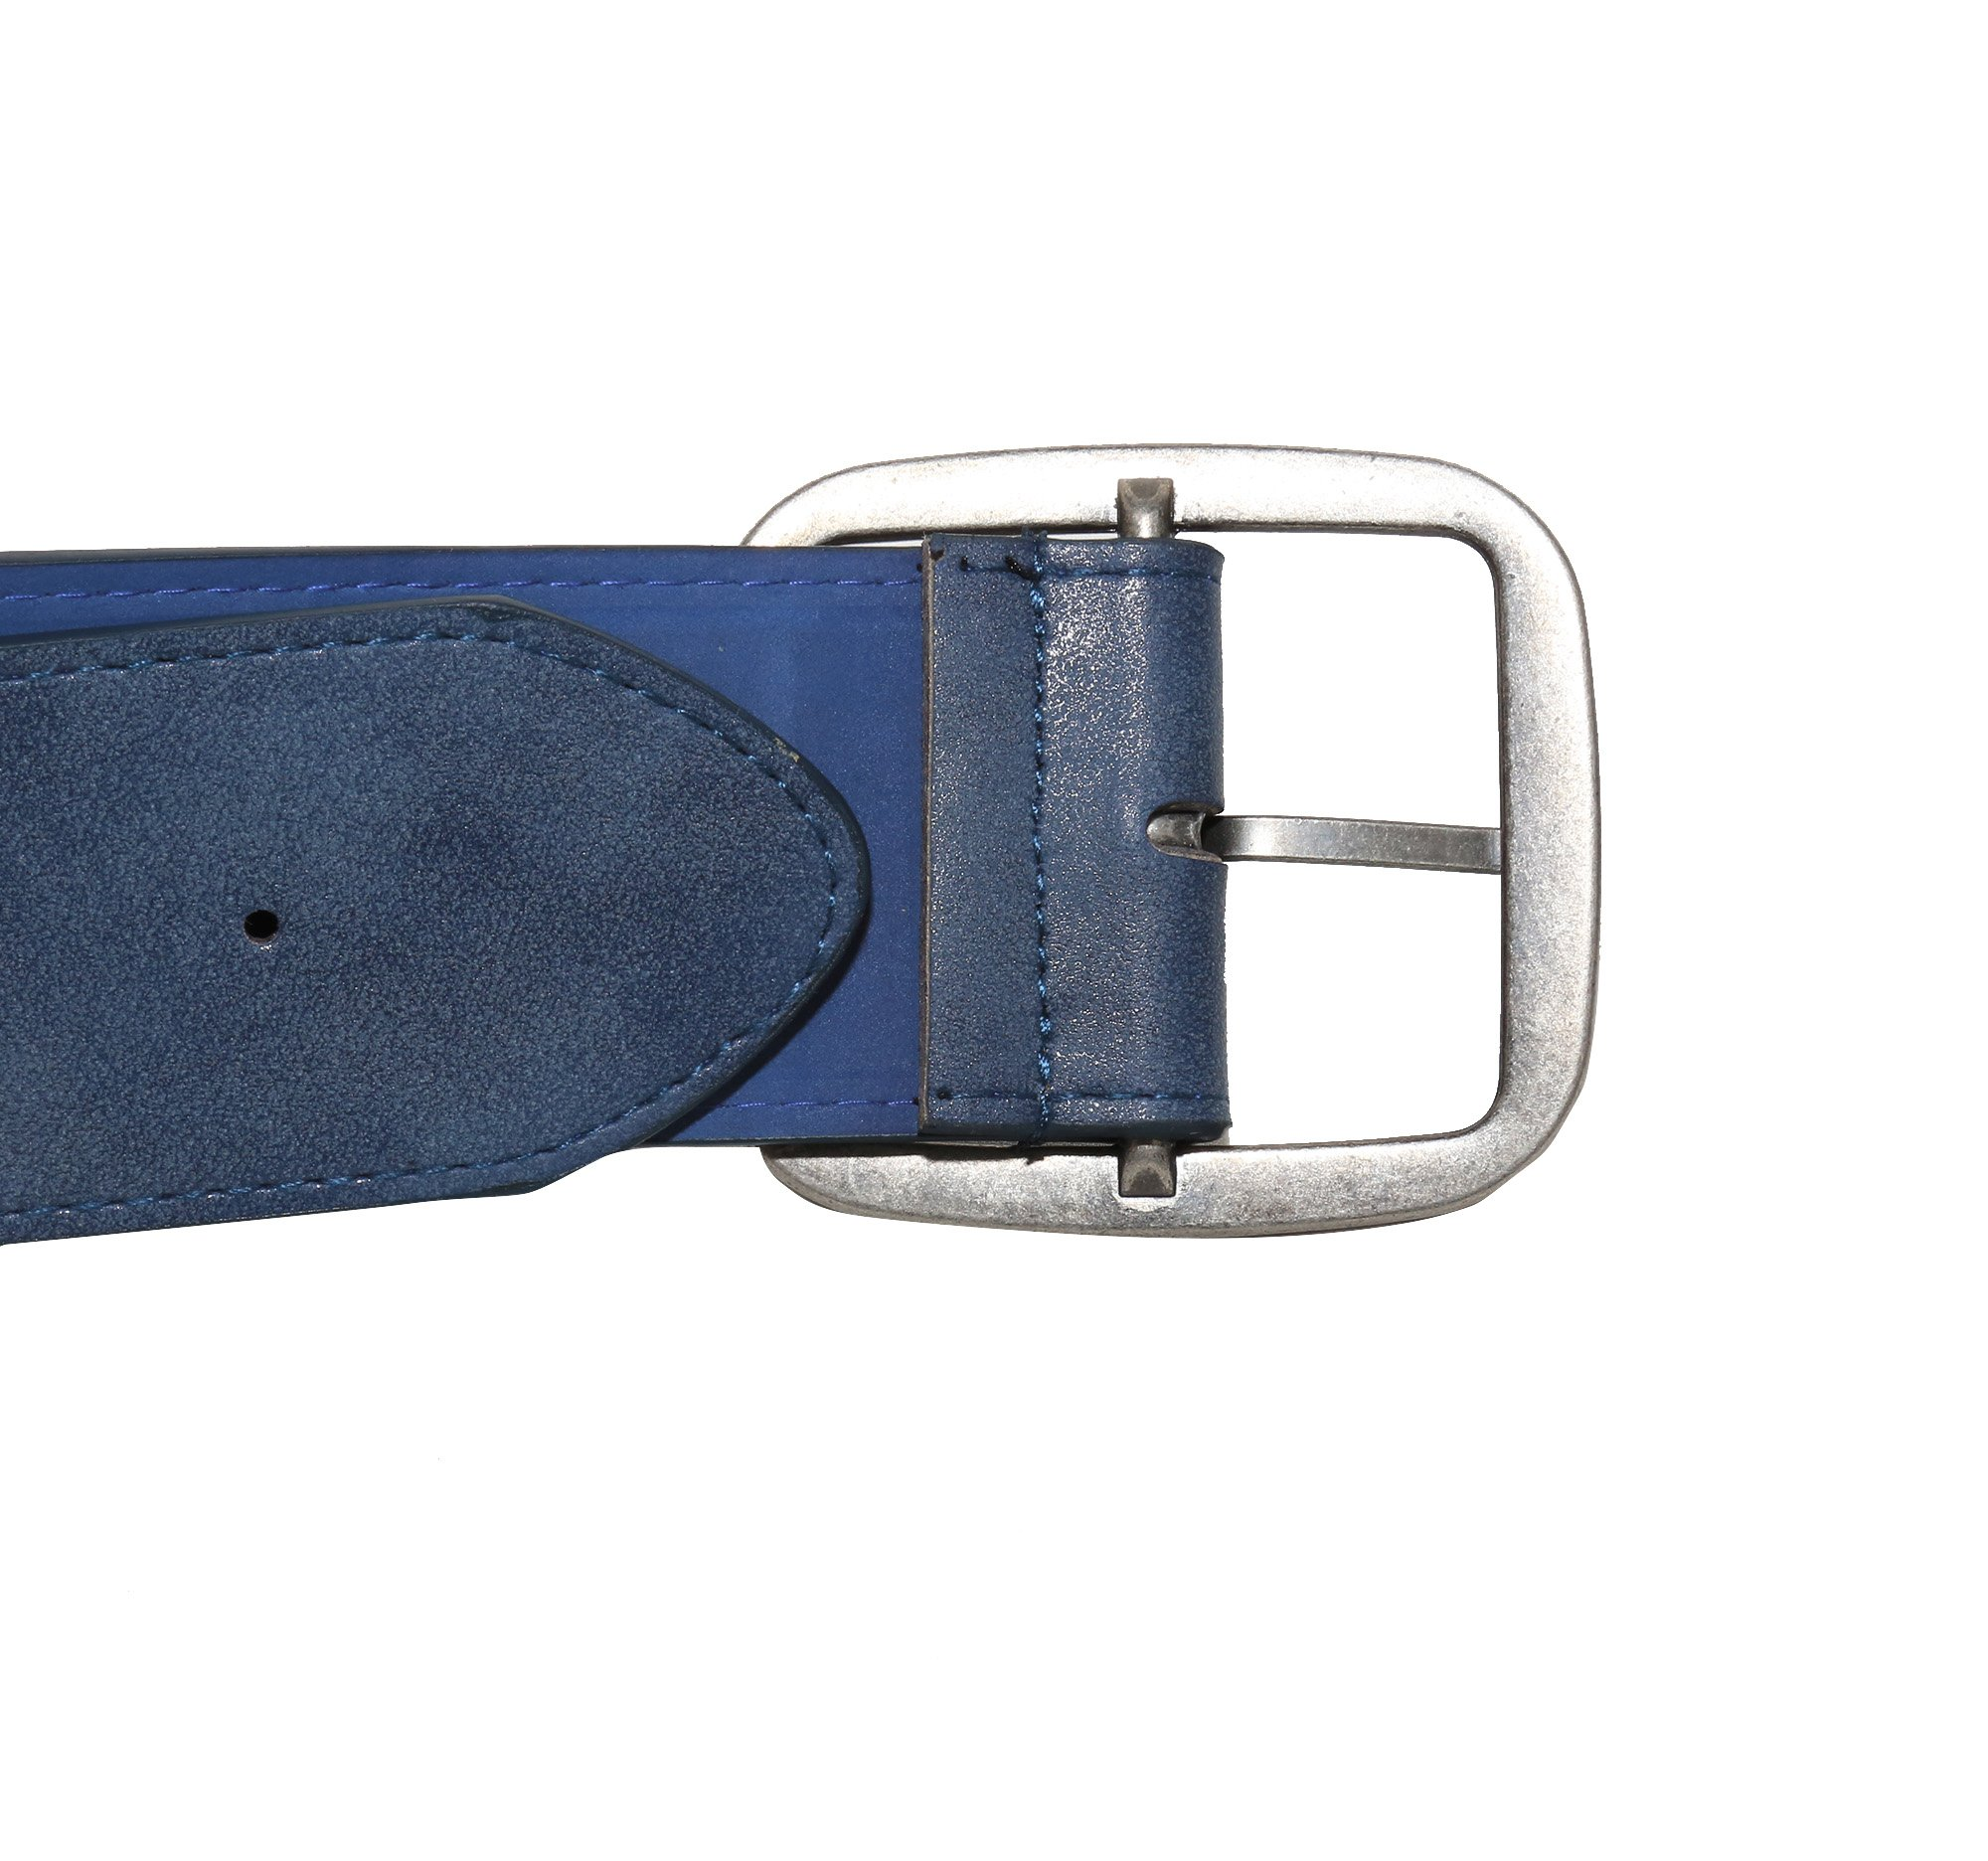 Modeway Women 2'' Wide Suede Leather Silver Square Buckle Adjustable Waist Belts (S-M, Navy-4#) by Modeway (Image #6)